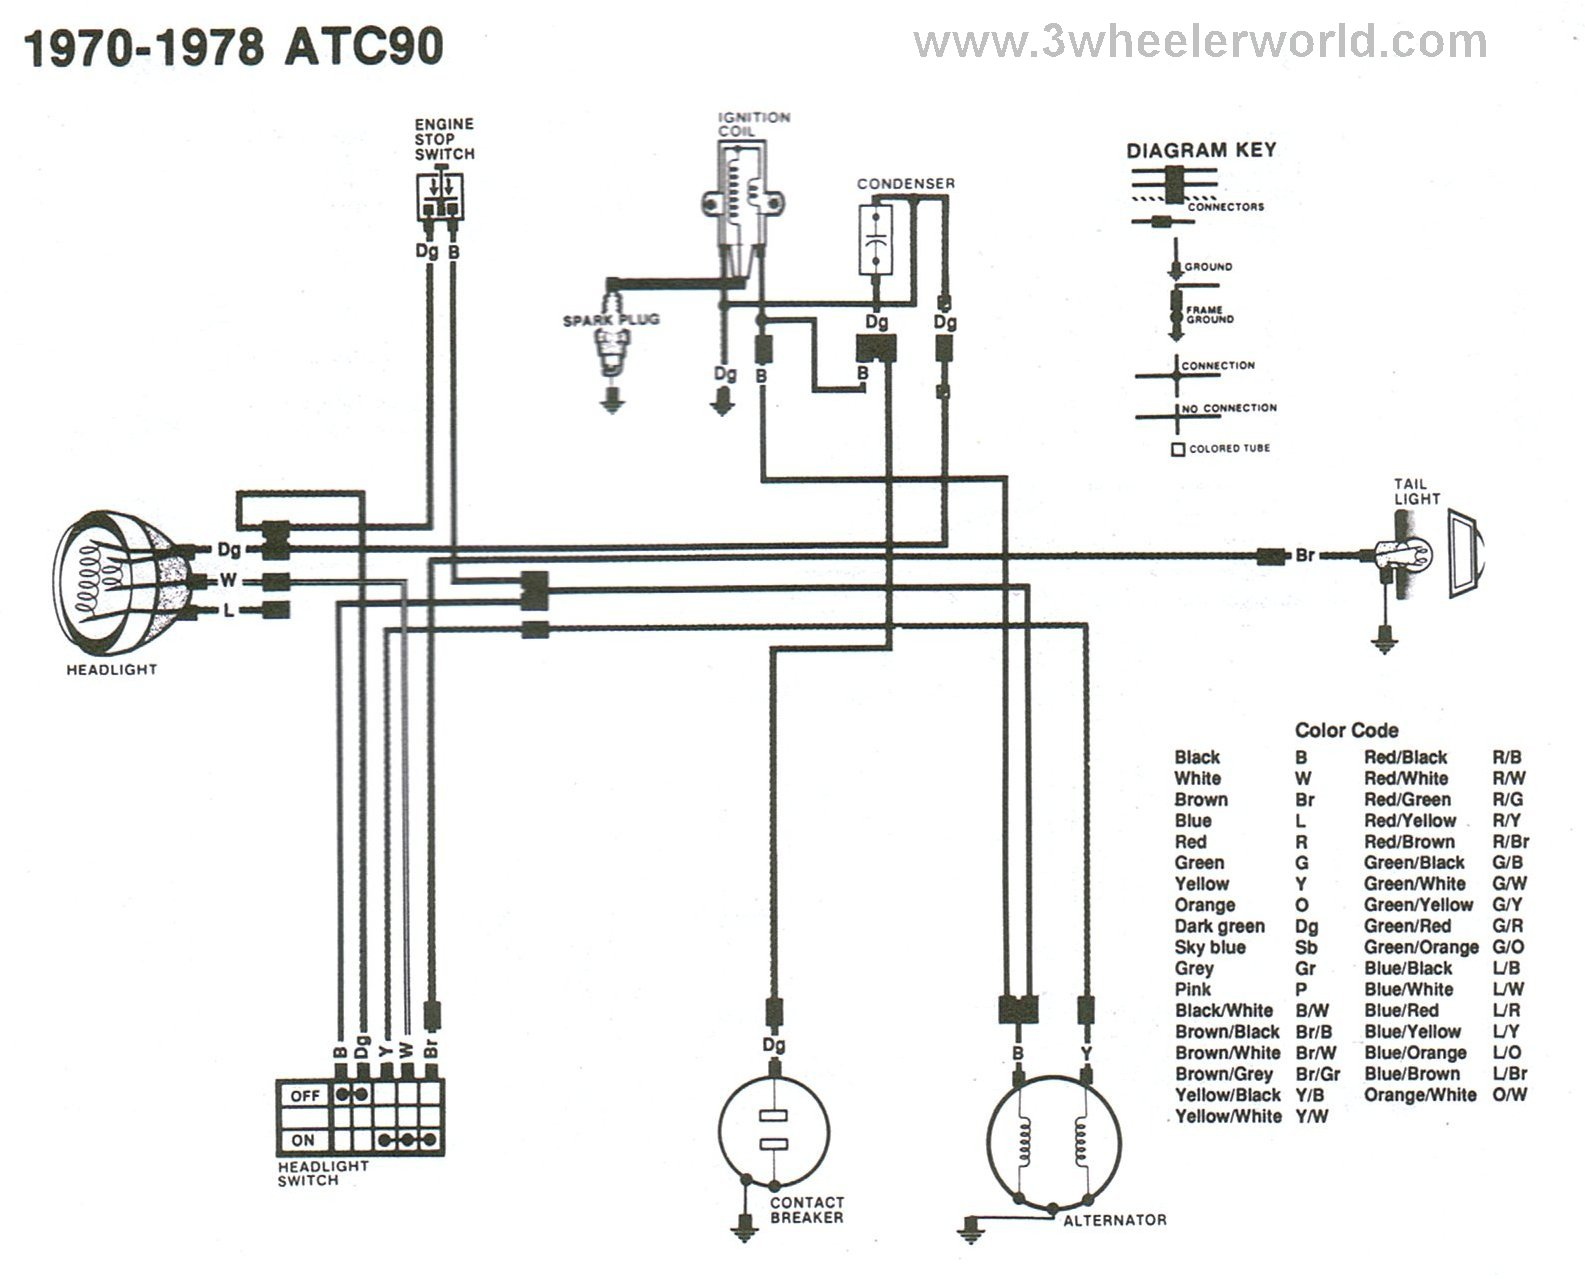 ATC90x70Thru78 3 wheeler world tech help honda wiring diagrams  at panicattacktreatment.co